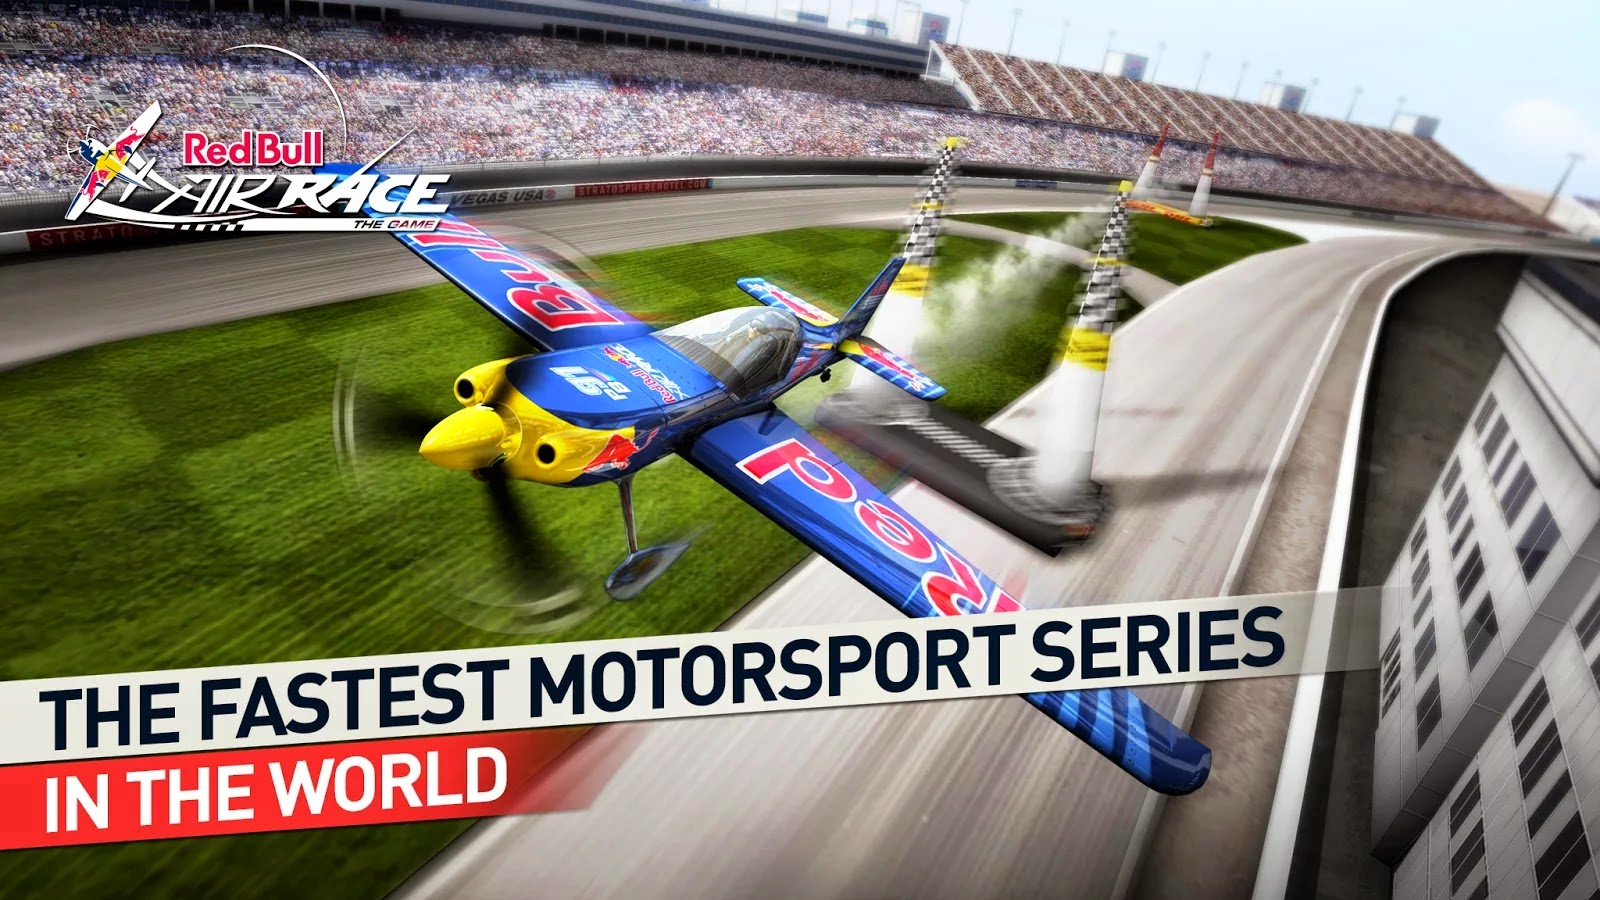 Red Bull Air Race The Game v1.20 APK Mod